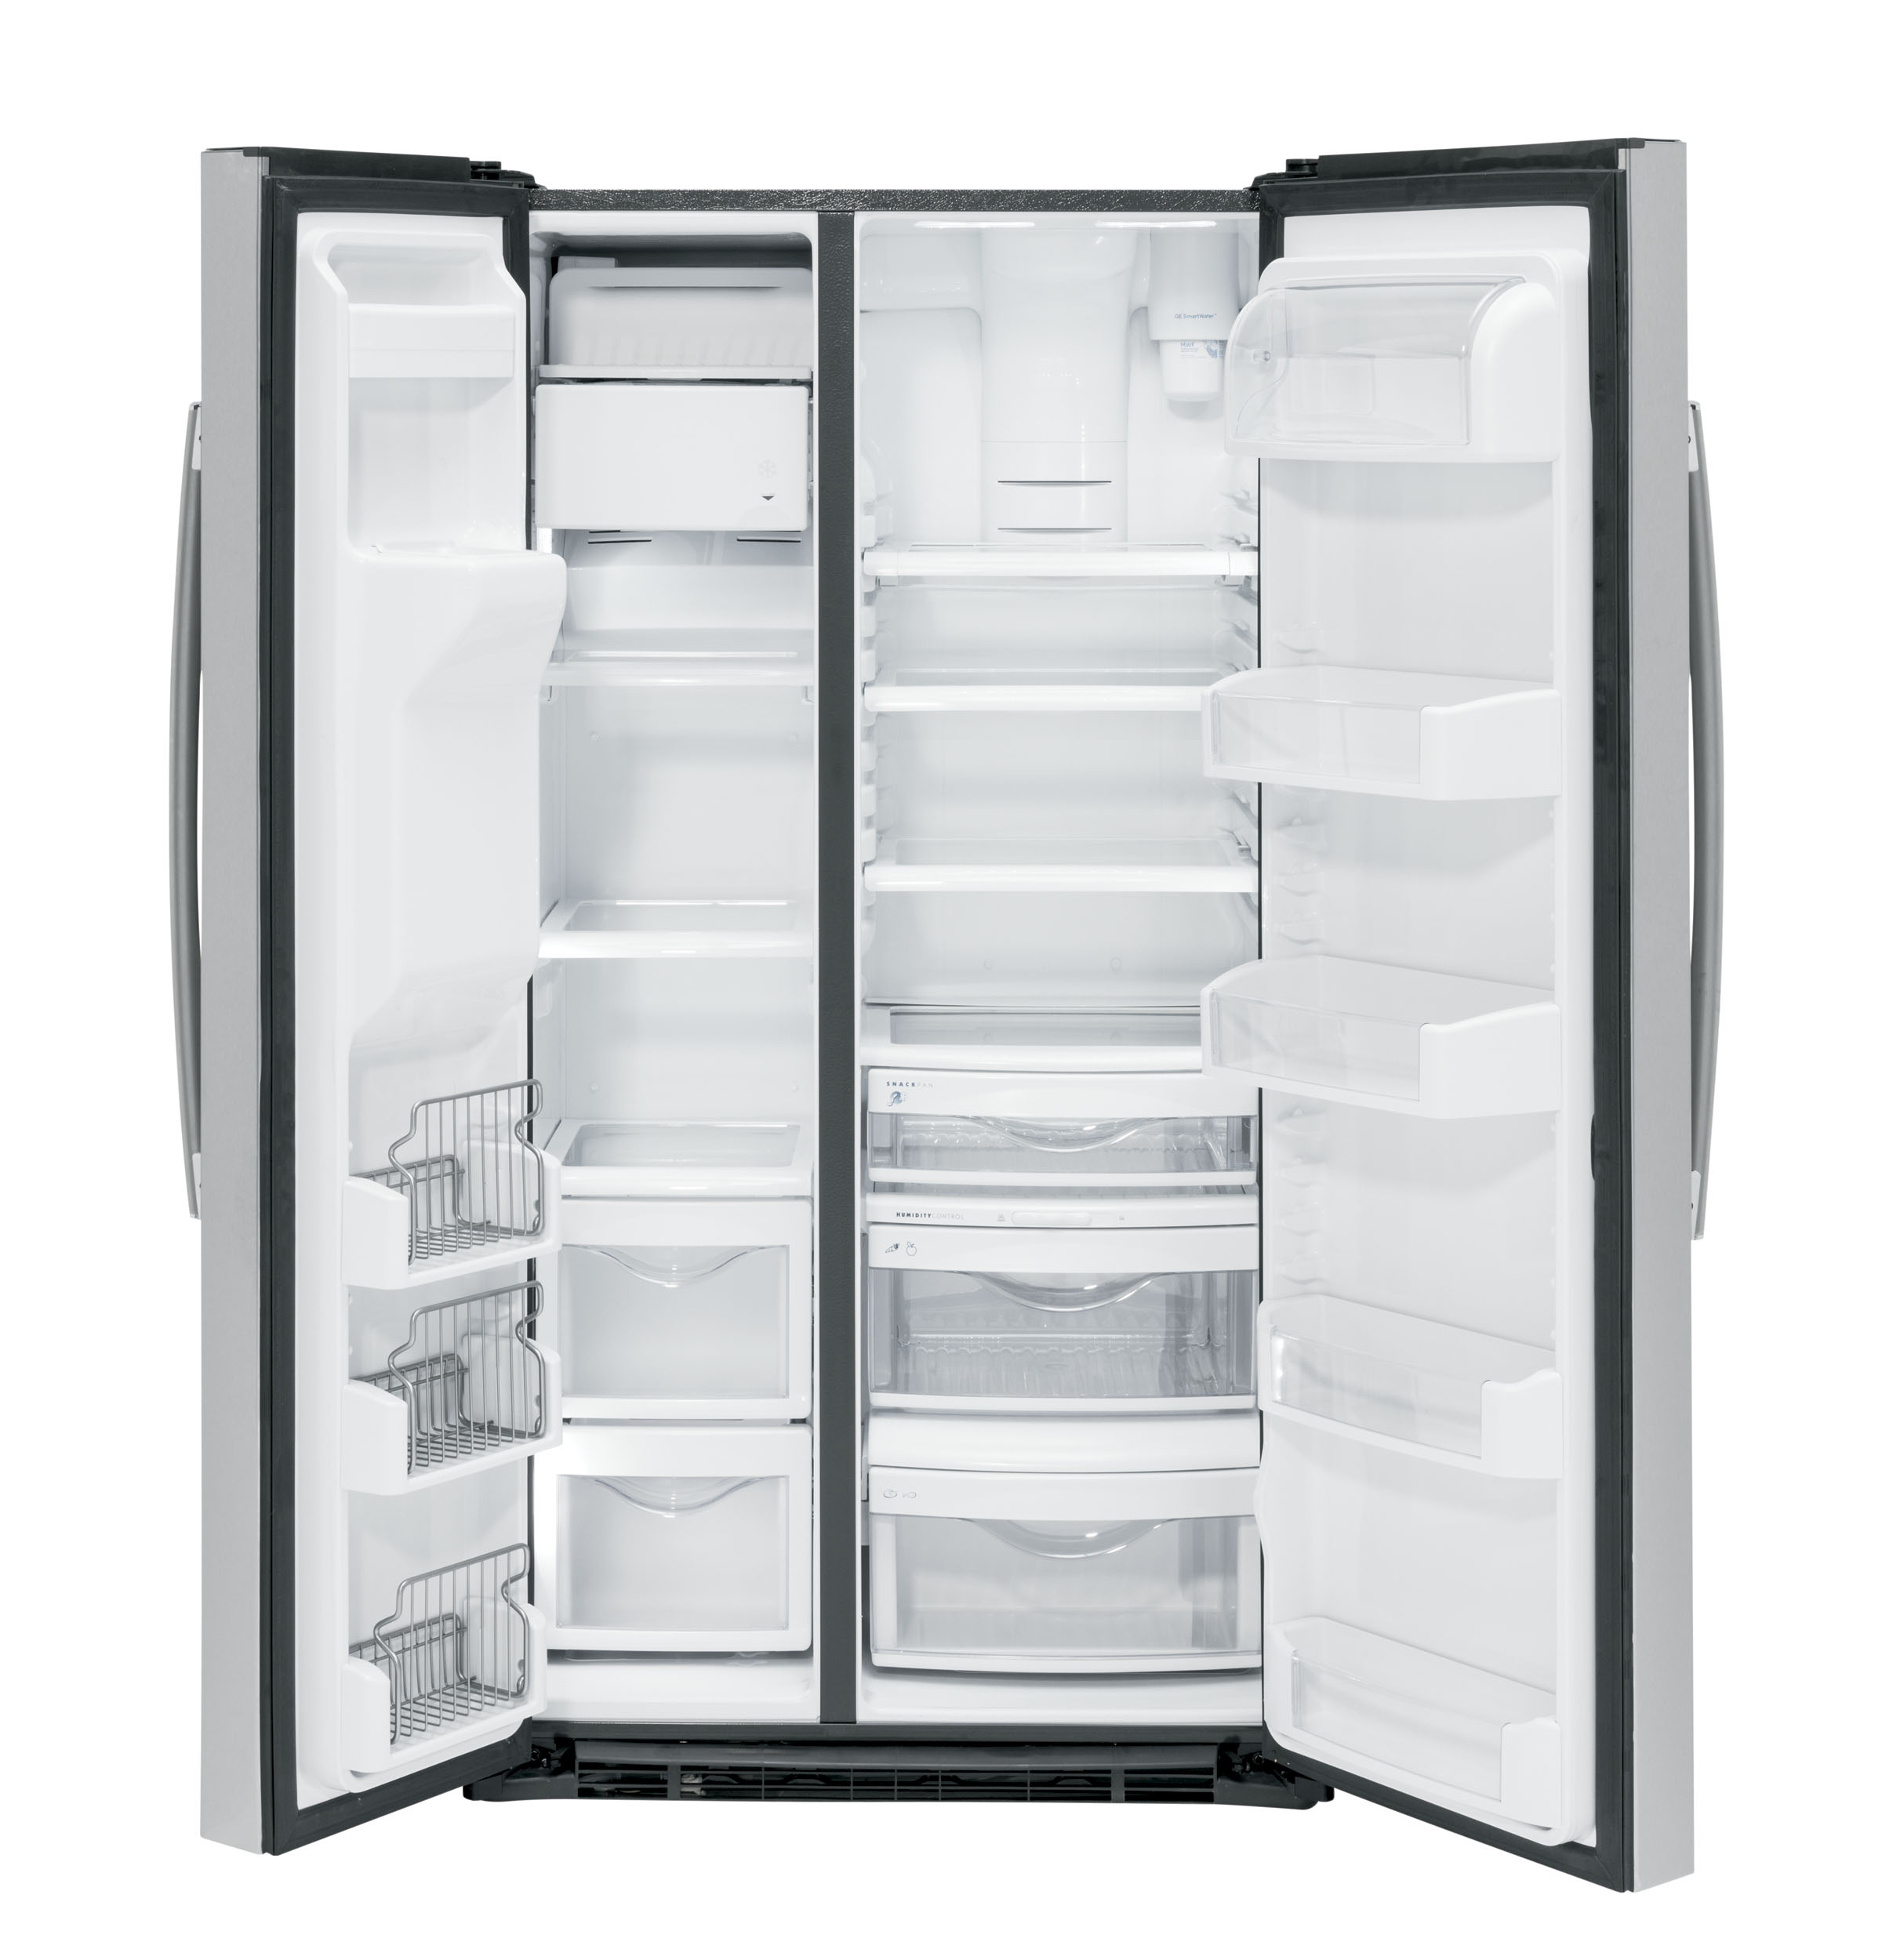 Model: PZS22MSKSS | GE Profile™ Series 21.9 Cu. Ft. Counter-Depth Side-By-Side Refrigerator